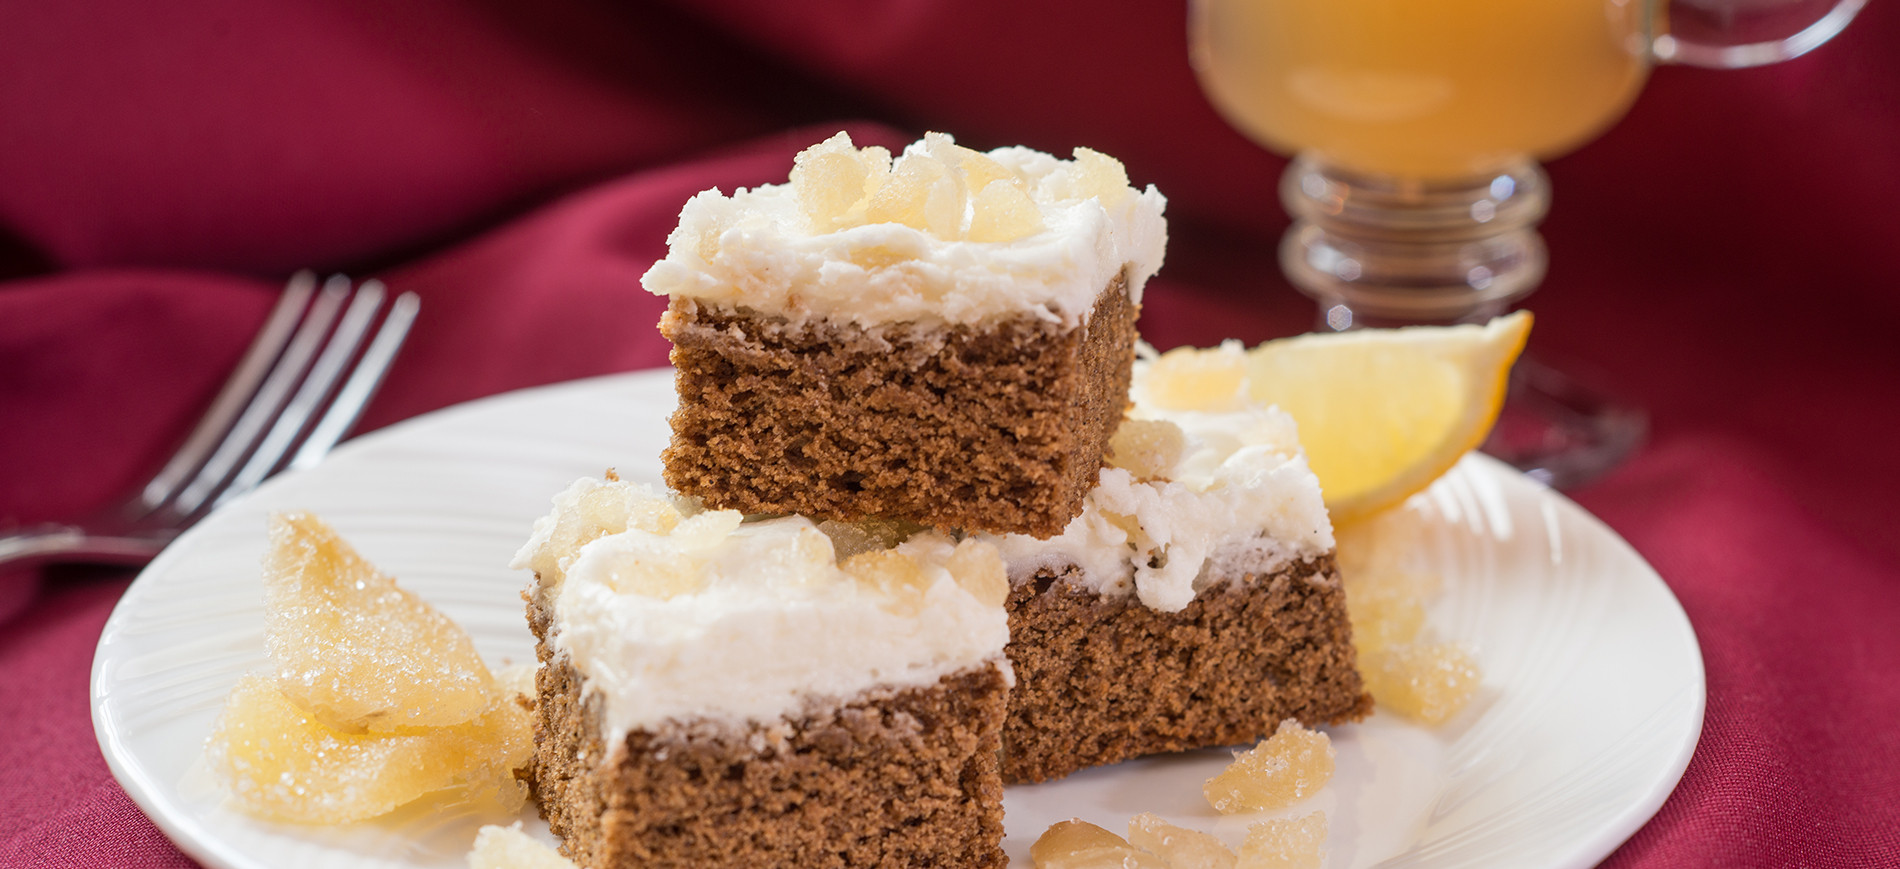 Gingerbread bars on white plate and red tablecloth